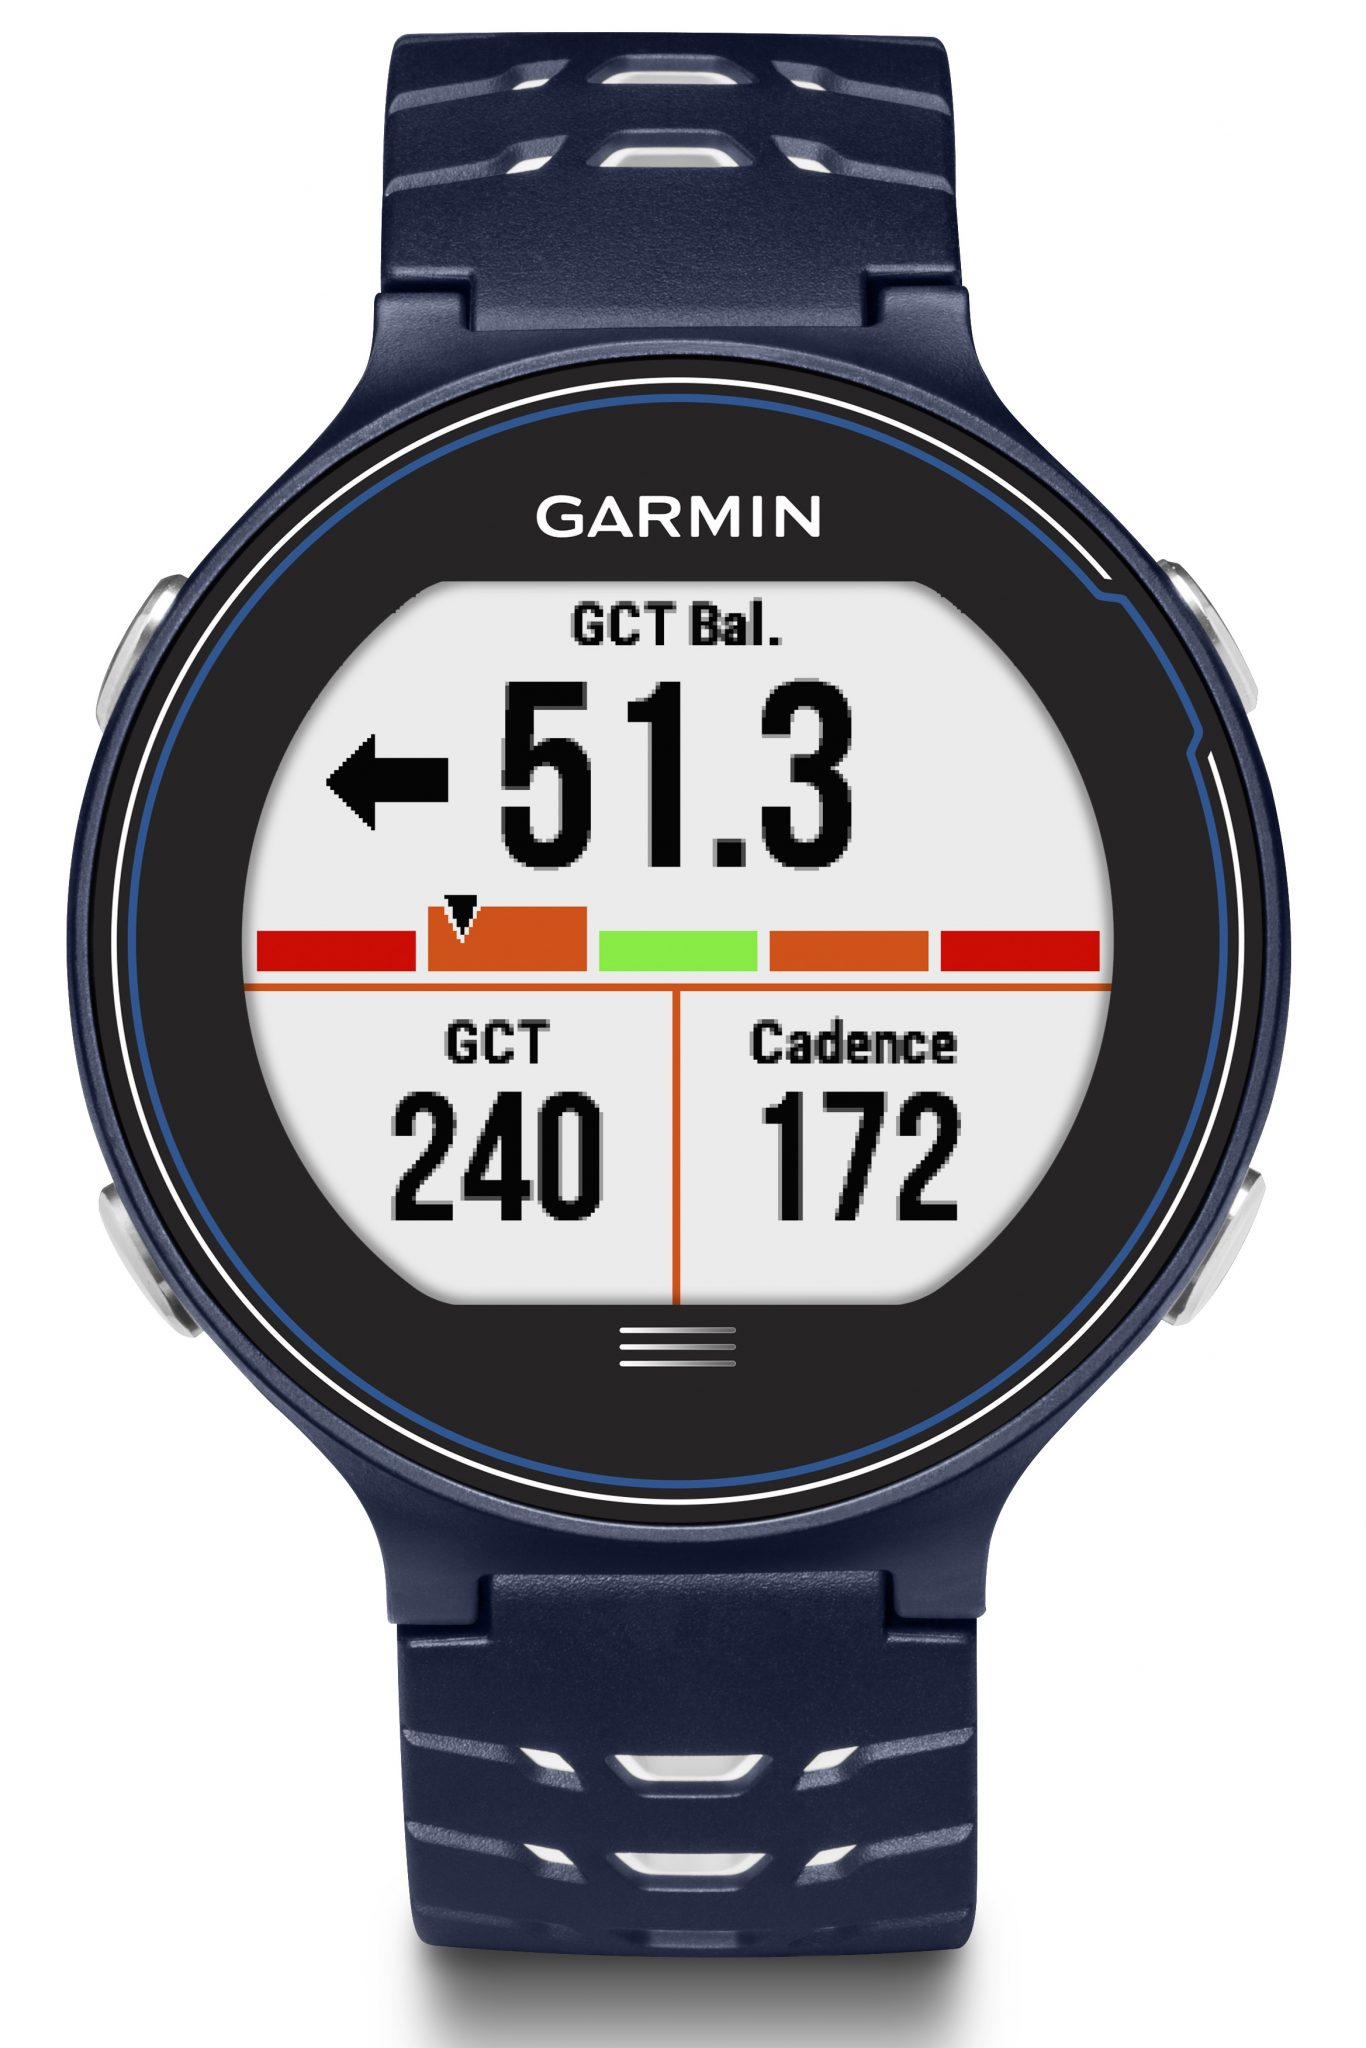 Source-Garmin-R-Daish-via-the5krunner